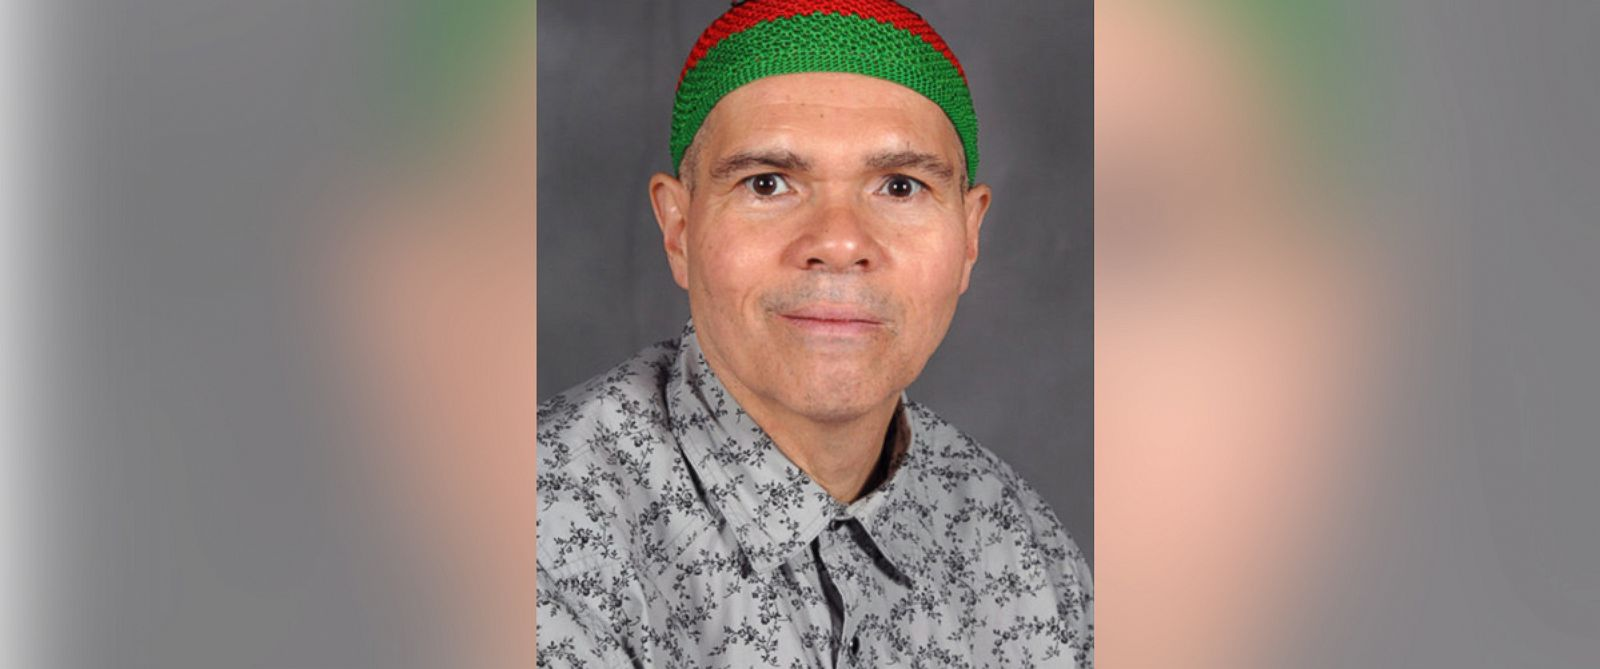 PHOTO: The 55-year-old history professor, Julio Pino, denies claims that he is a supporter of ISIS.